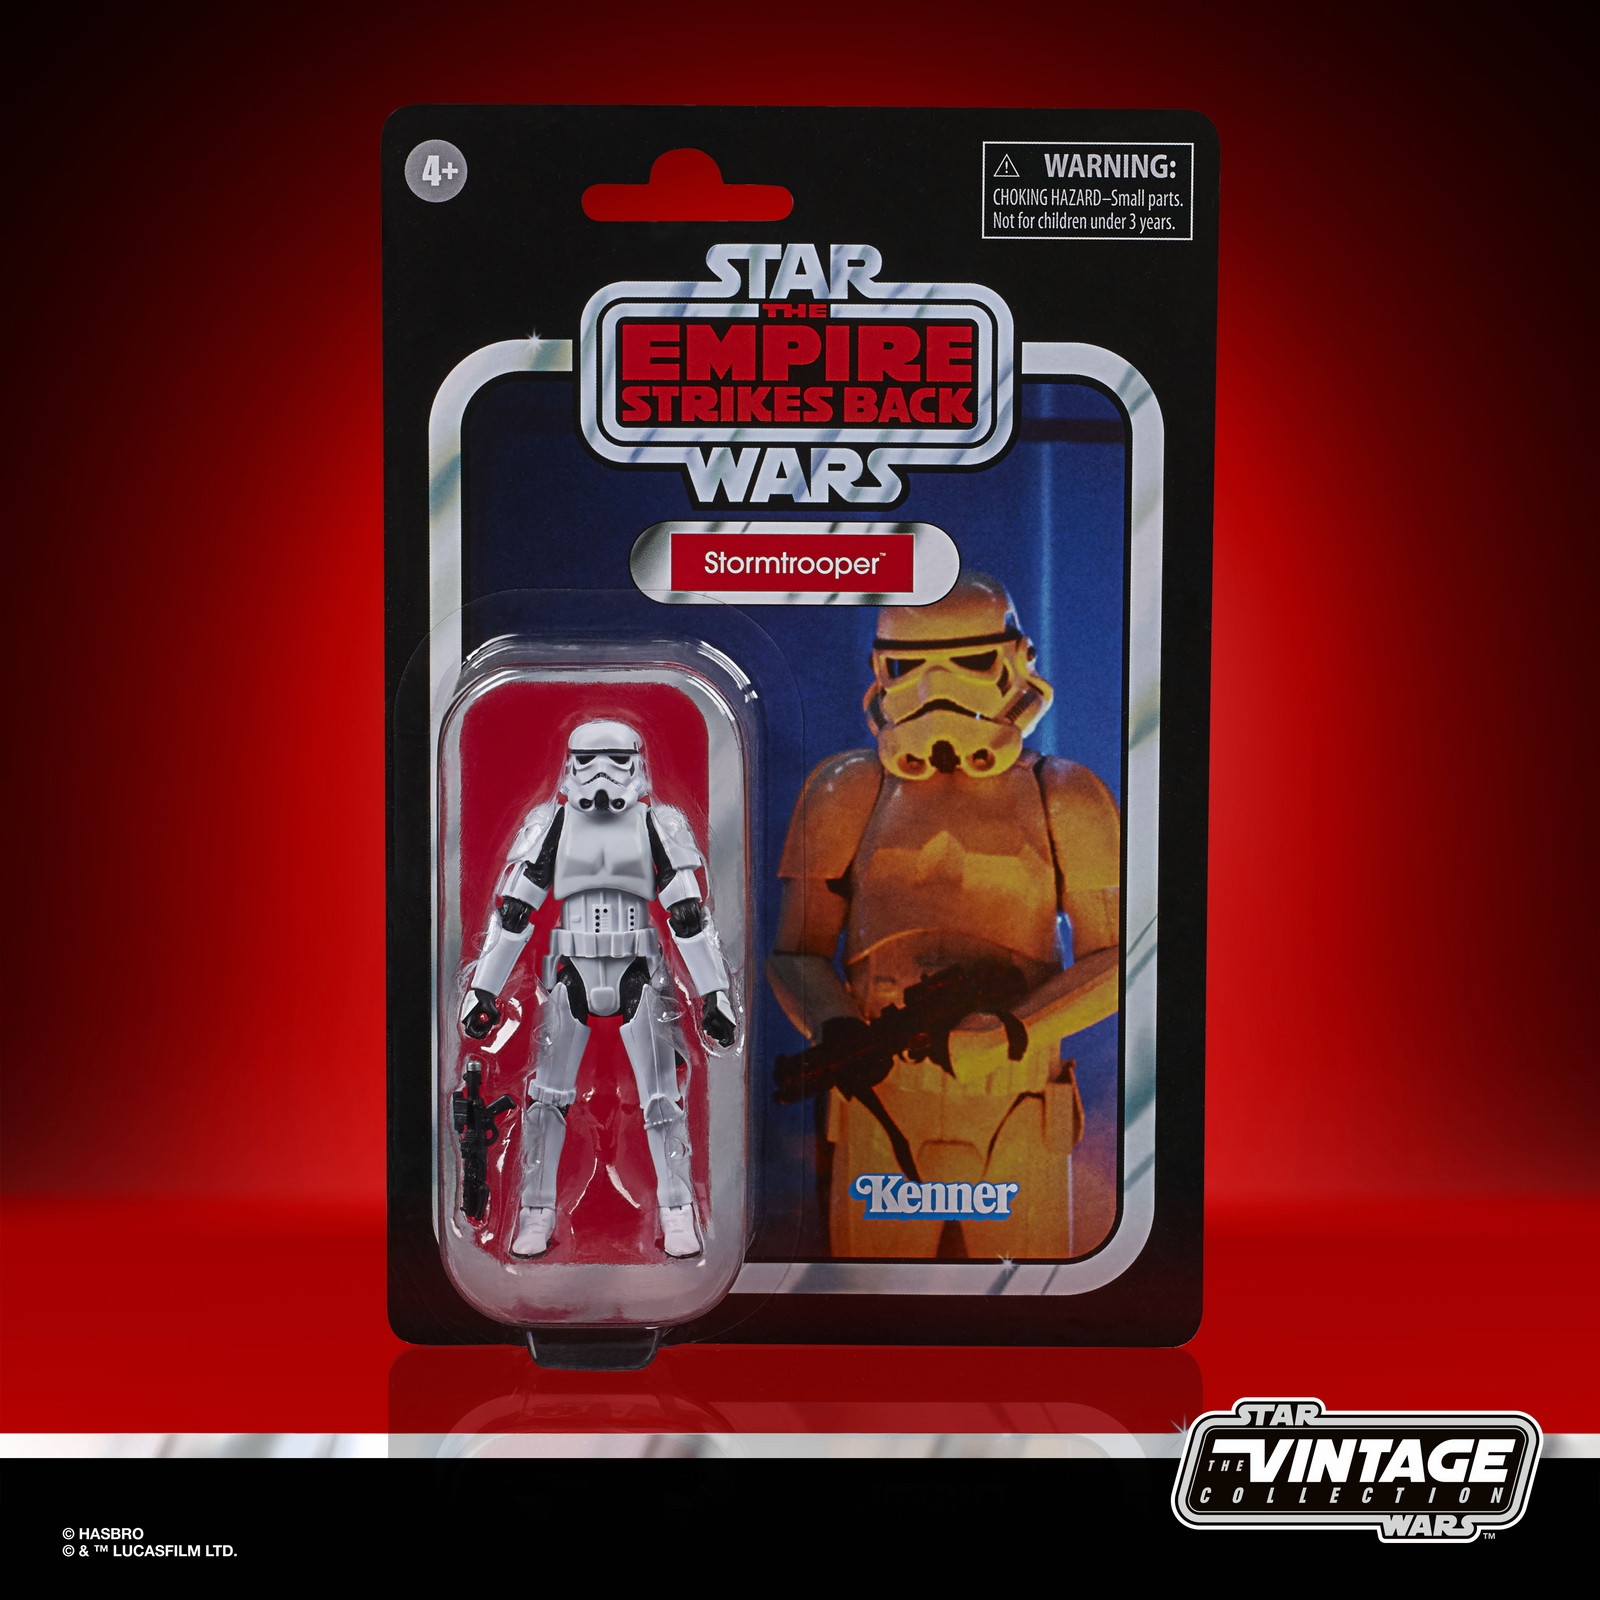 star_wars_the_vintage_collection_carbon-freezing_chamber_playset_included_stormtrooper_in_pck.jpg